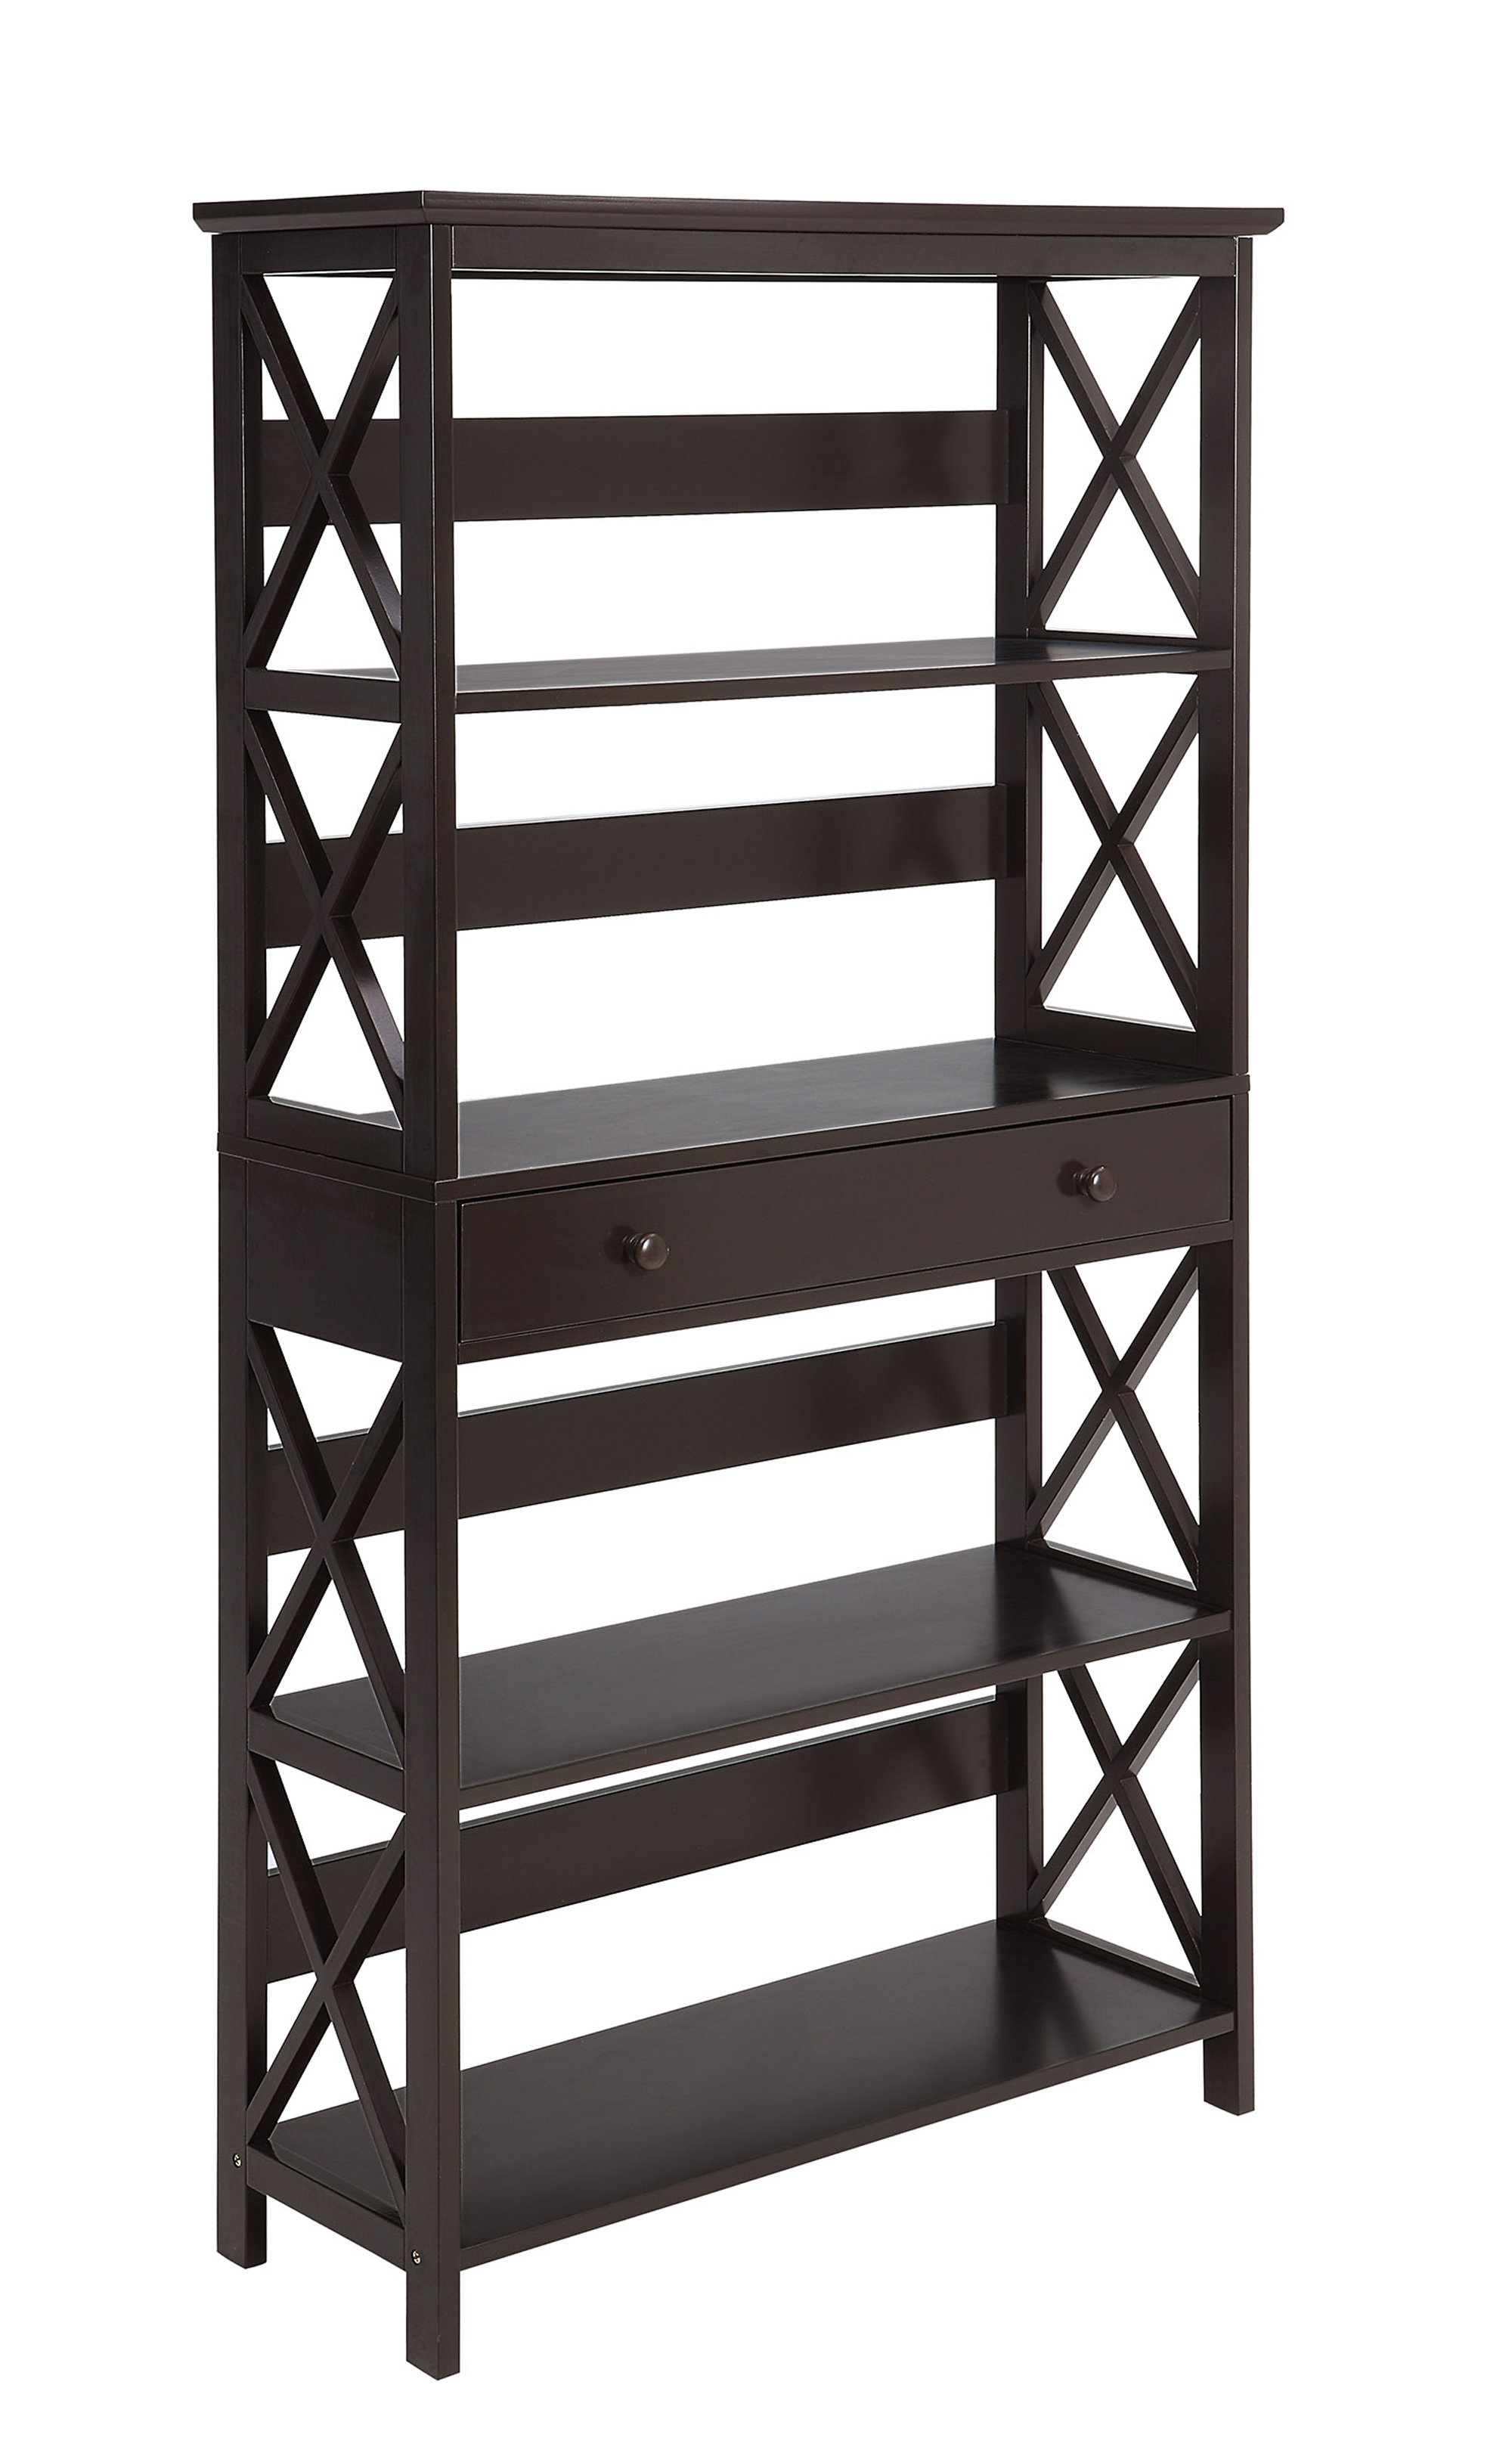 Beachcrest Home Gracelynn 5 Tier Etagere Bookcase Intended For Fashionable Gracelynn 5 Tier Etagere Bookcases (View 9 of 20)